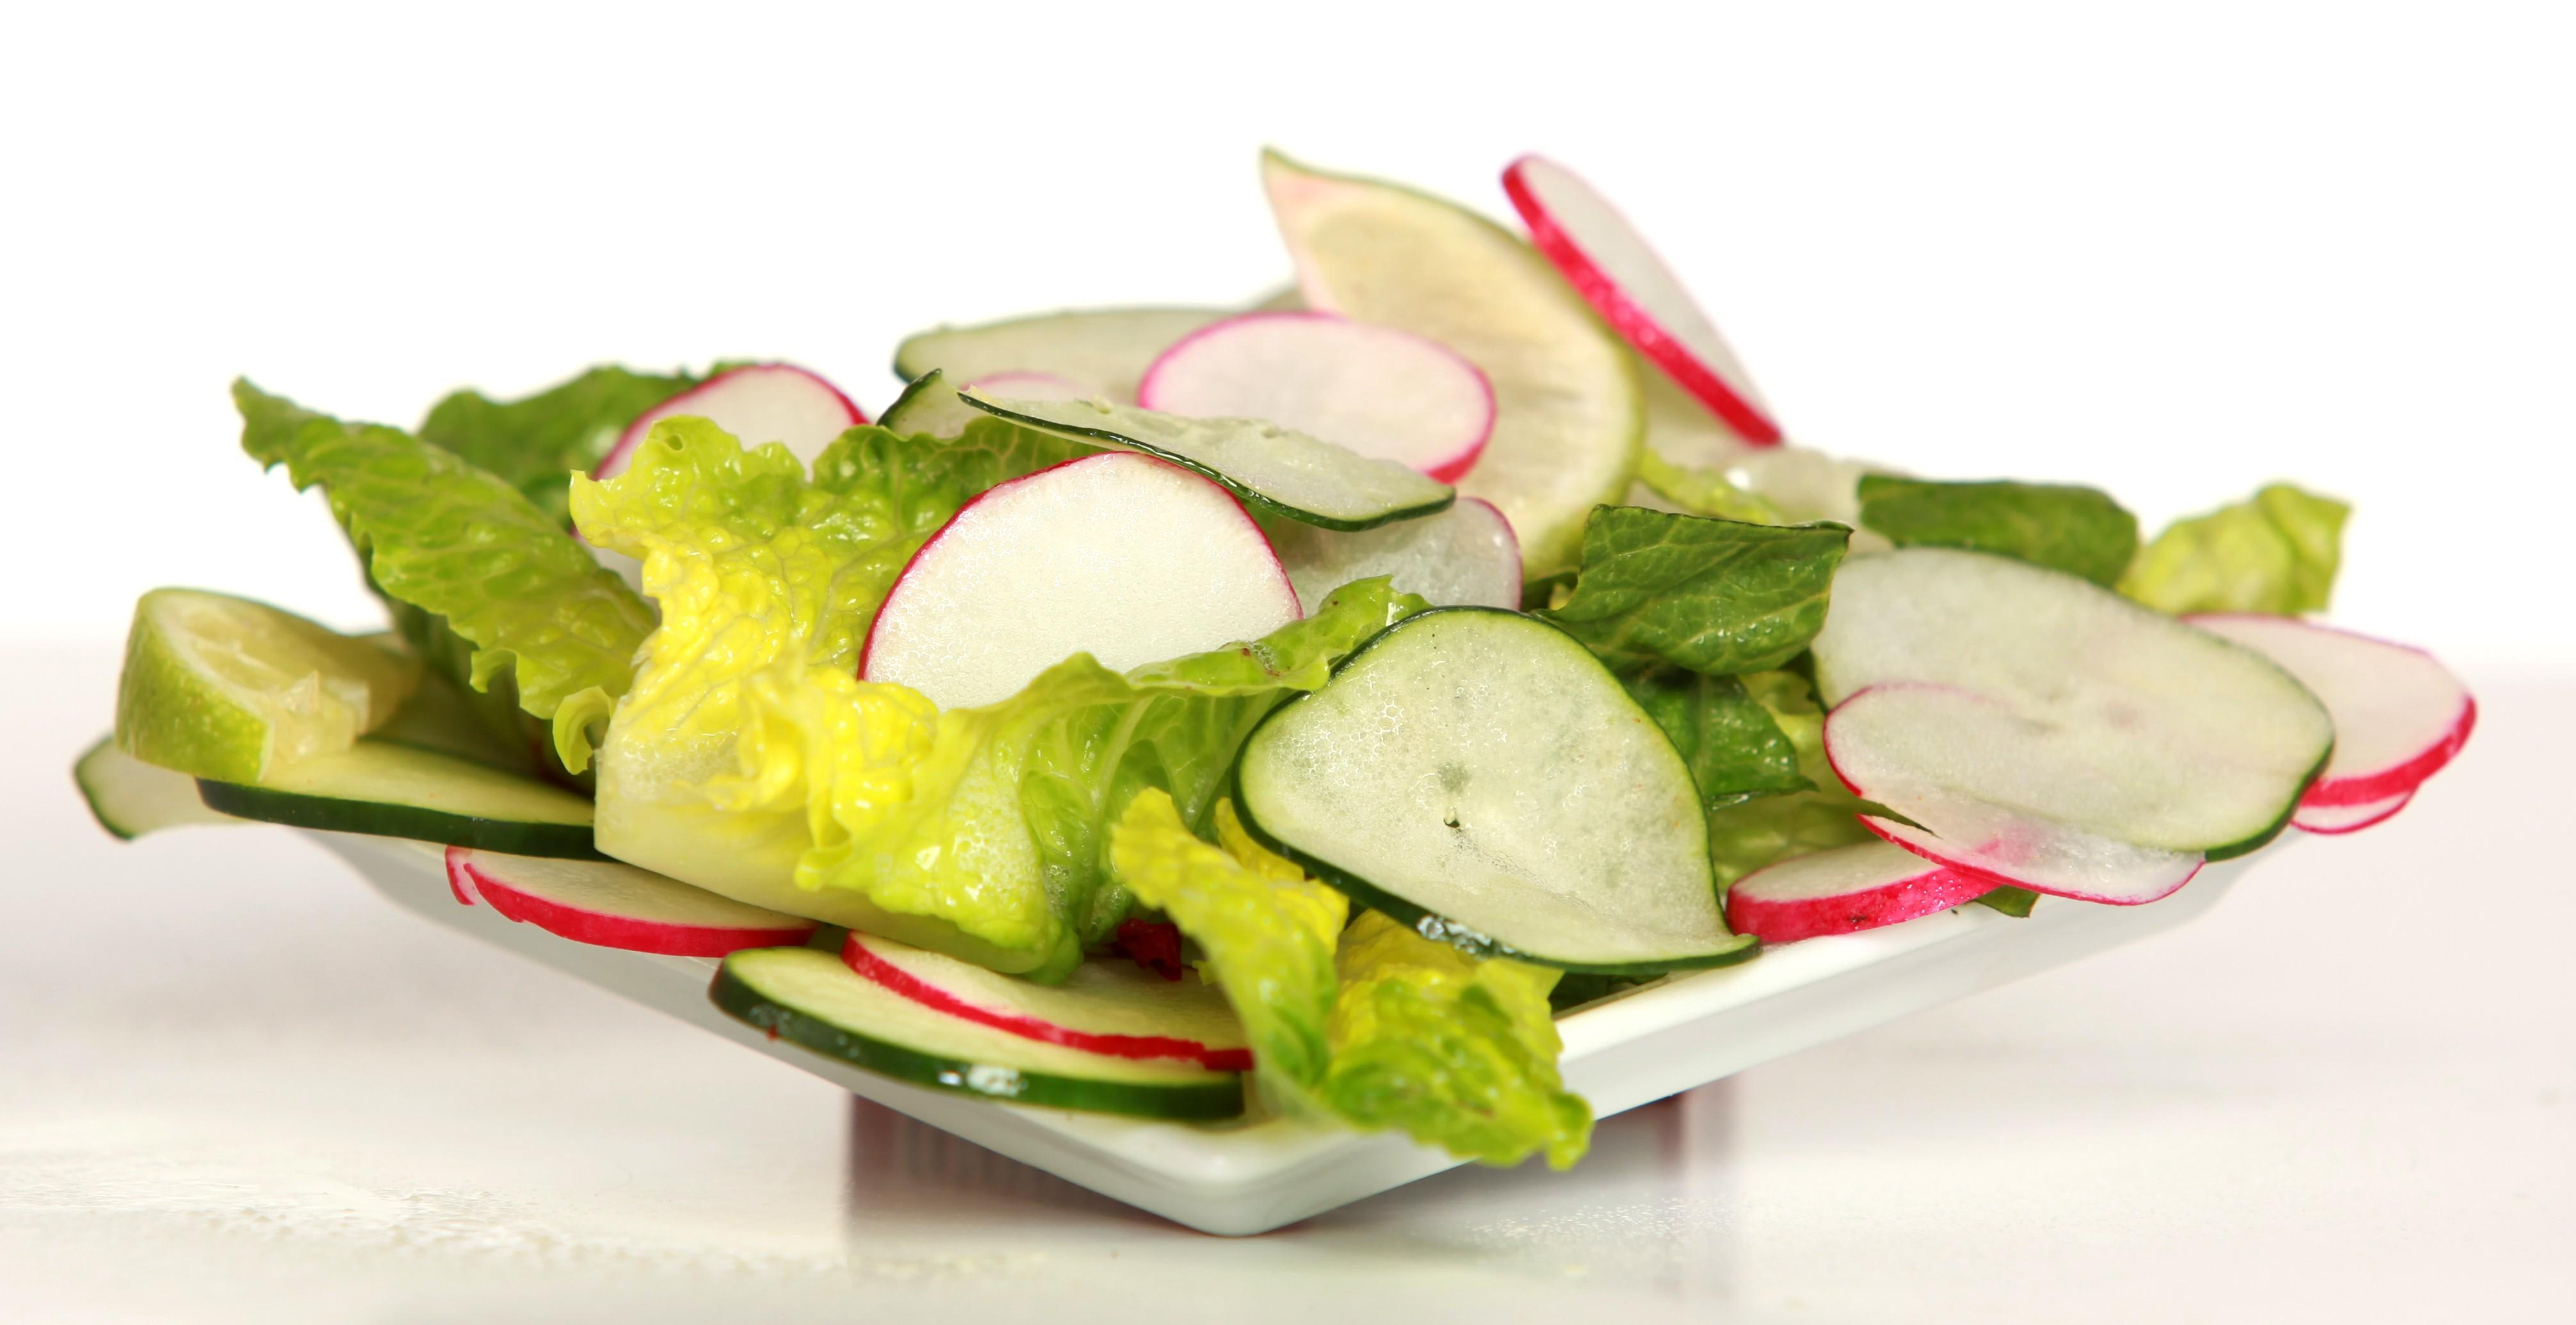 Fresh made Bombay Salad is a medley of romaine lettuce, chickpeas, diced tomatoes, sliced radish and cucumbers served with our house made spiced lime vinaigrette. at Bombay Wraps